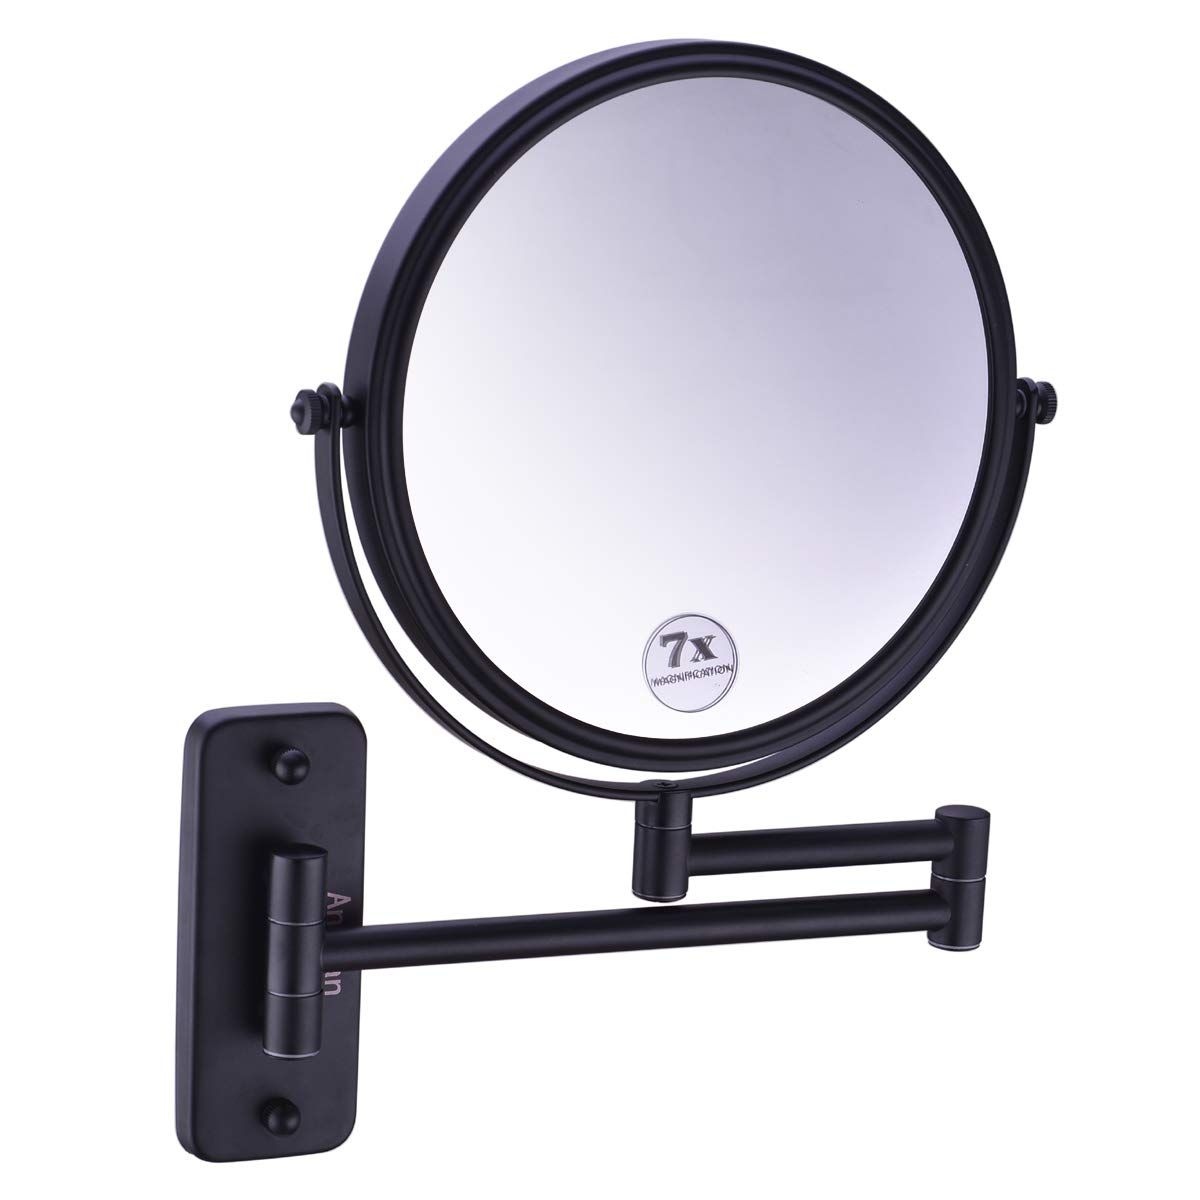 Anpean 8 Inch Double Sided Swivel Wall Mounted Makeup Mirror With 7x Magnification Matt In 2020 Wall Mounted Makeup Mirror Wall Mounted Magnifying Mirror Makeup Mirror